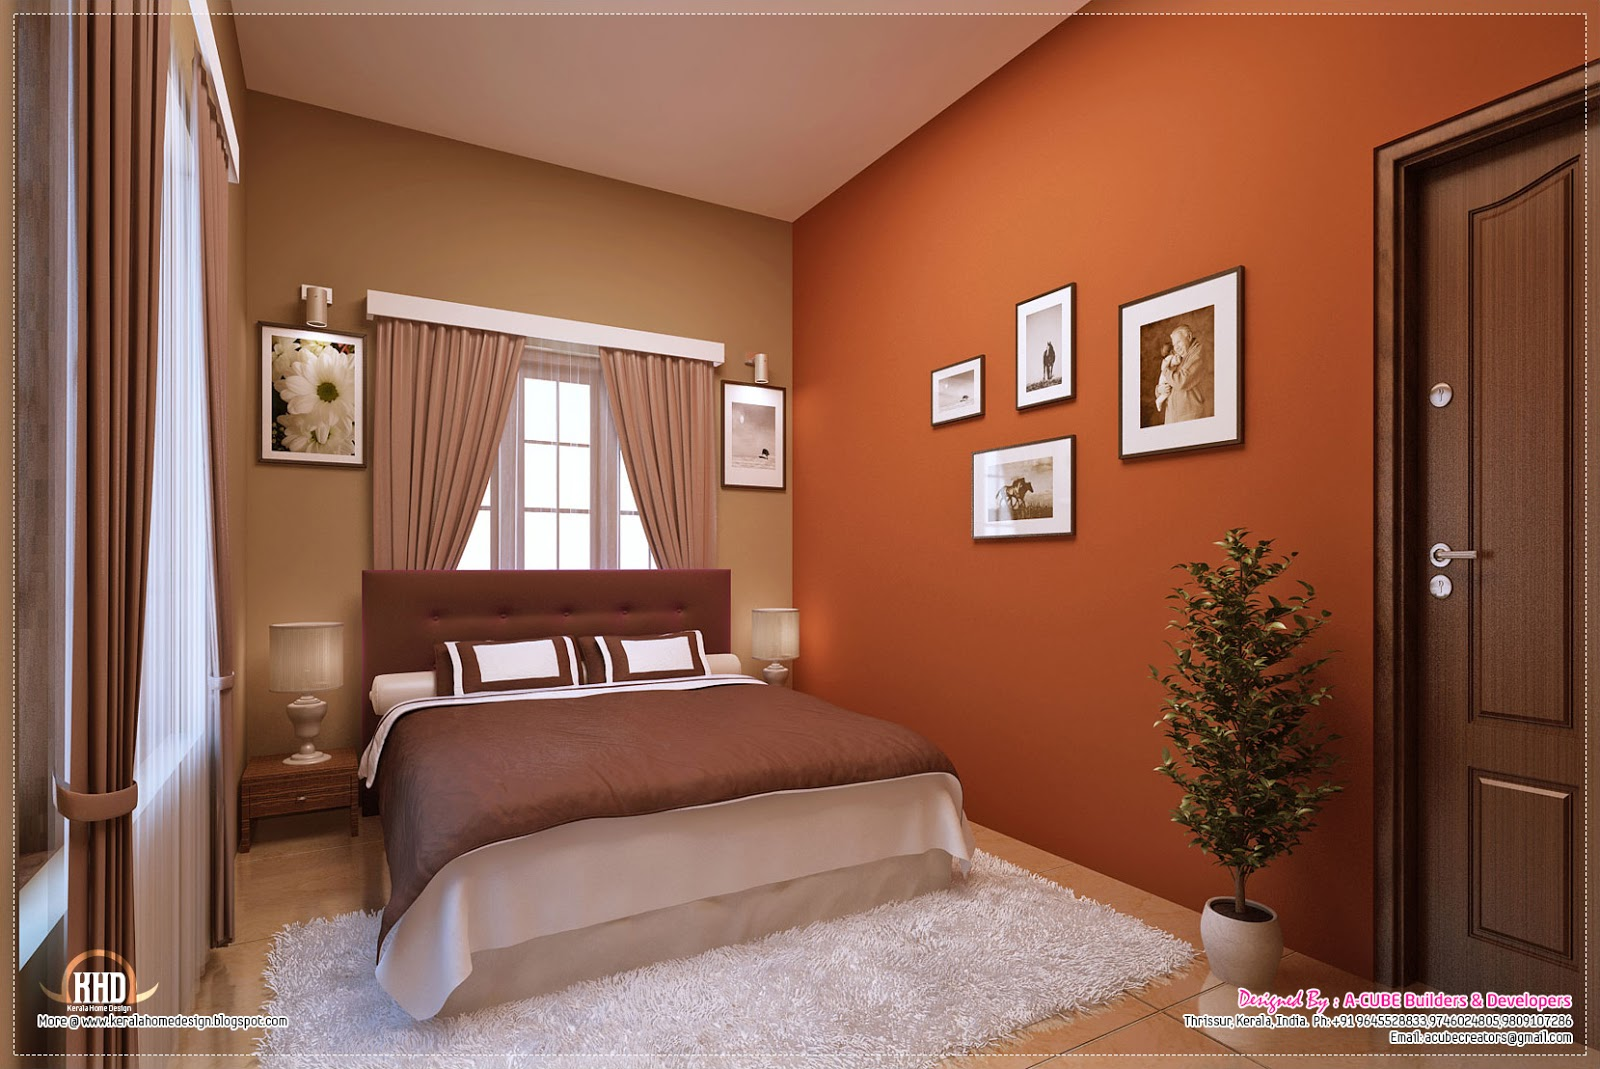 Awesome interior decoration ideas home kerala plans for Master bedroom interior design images